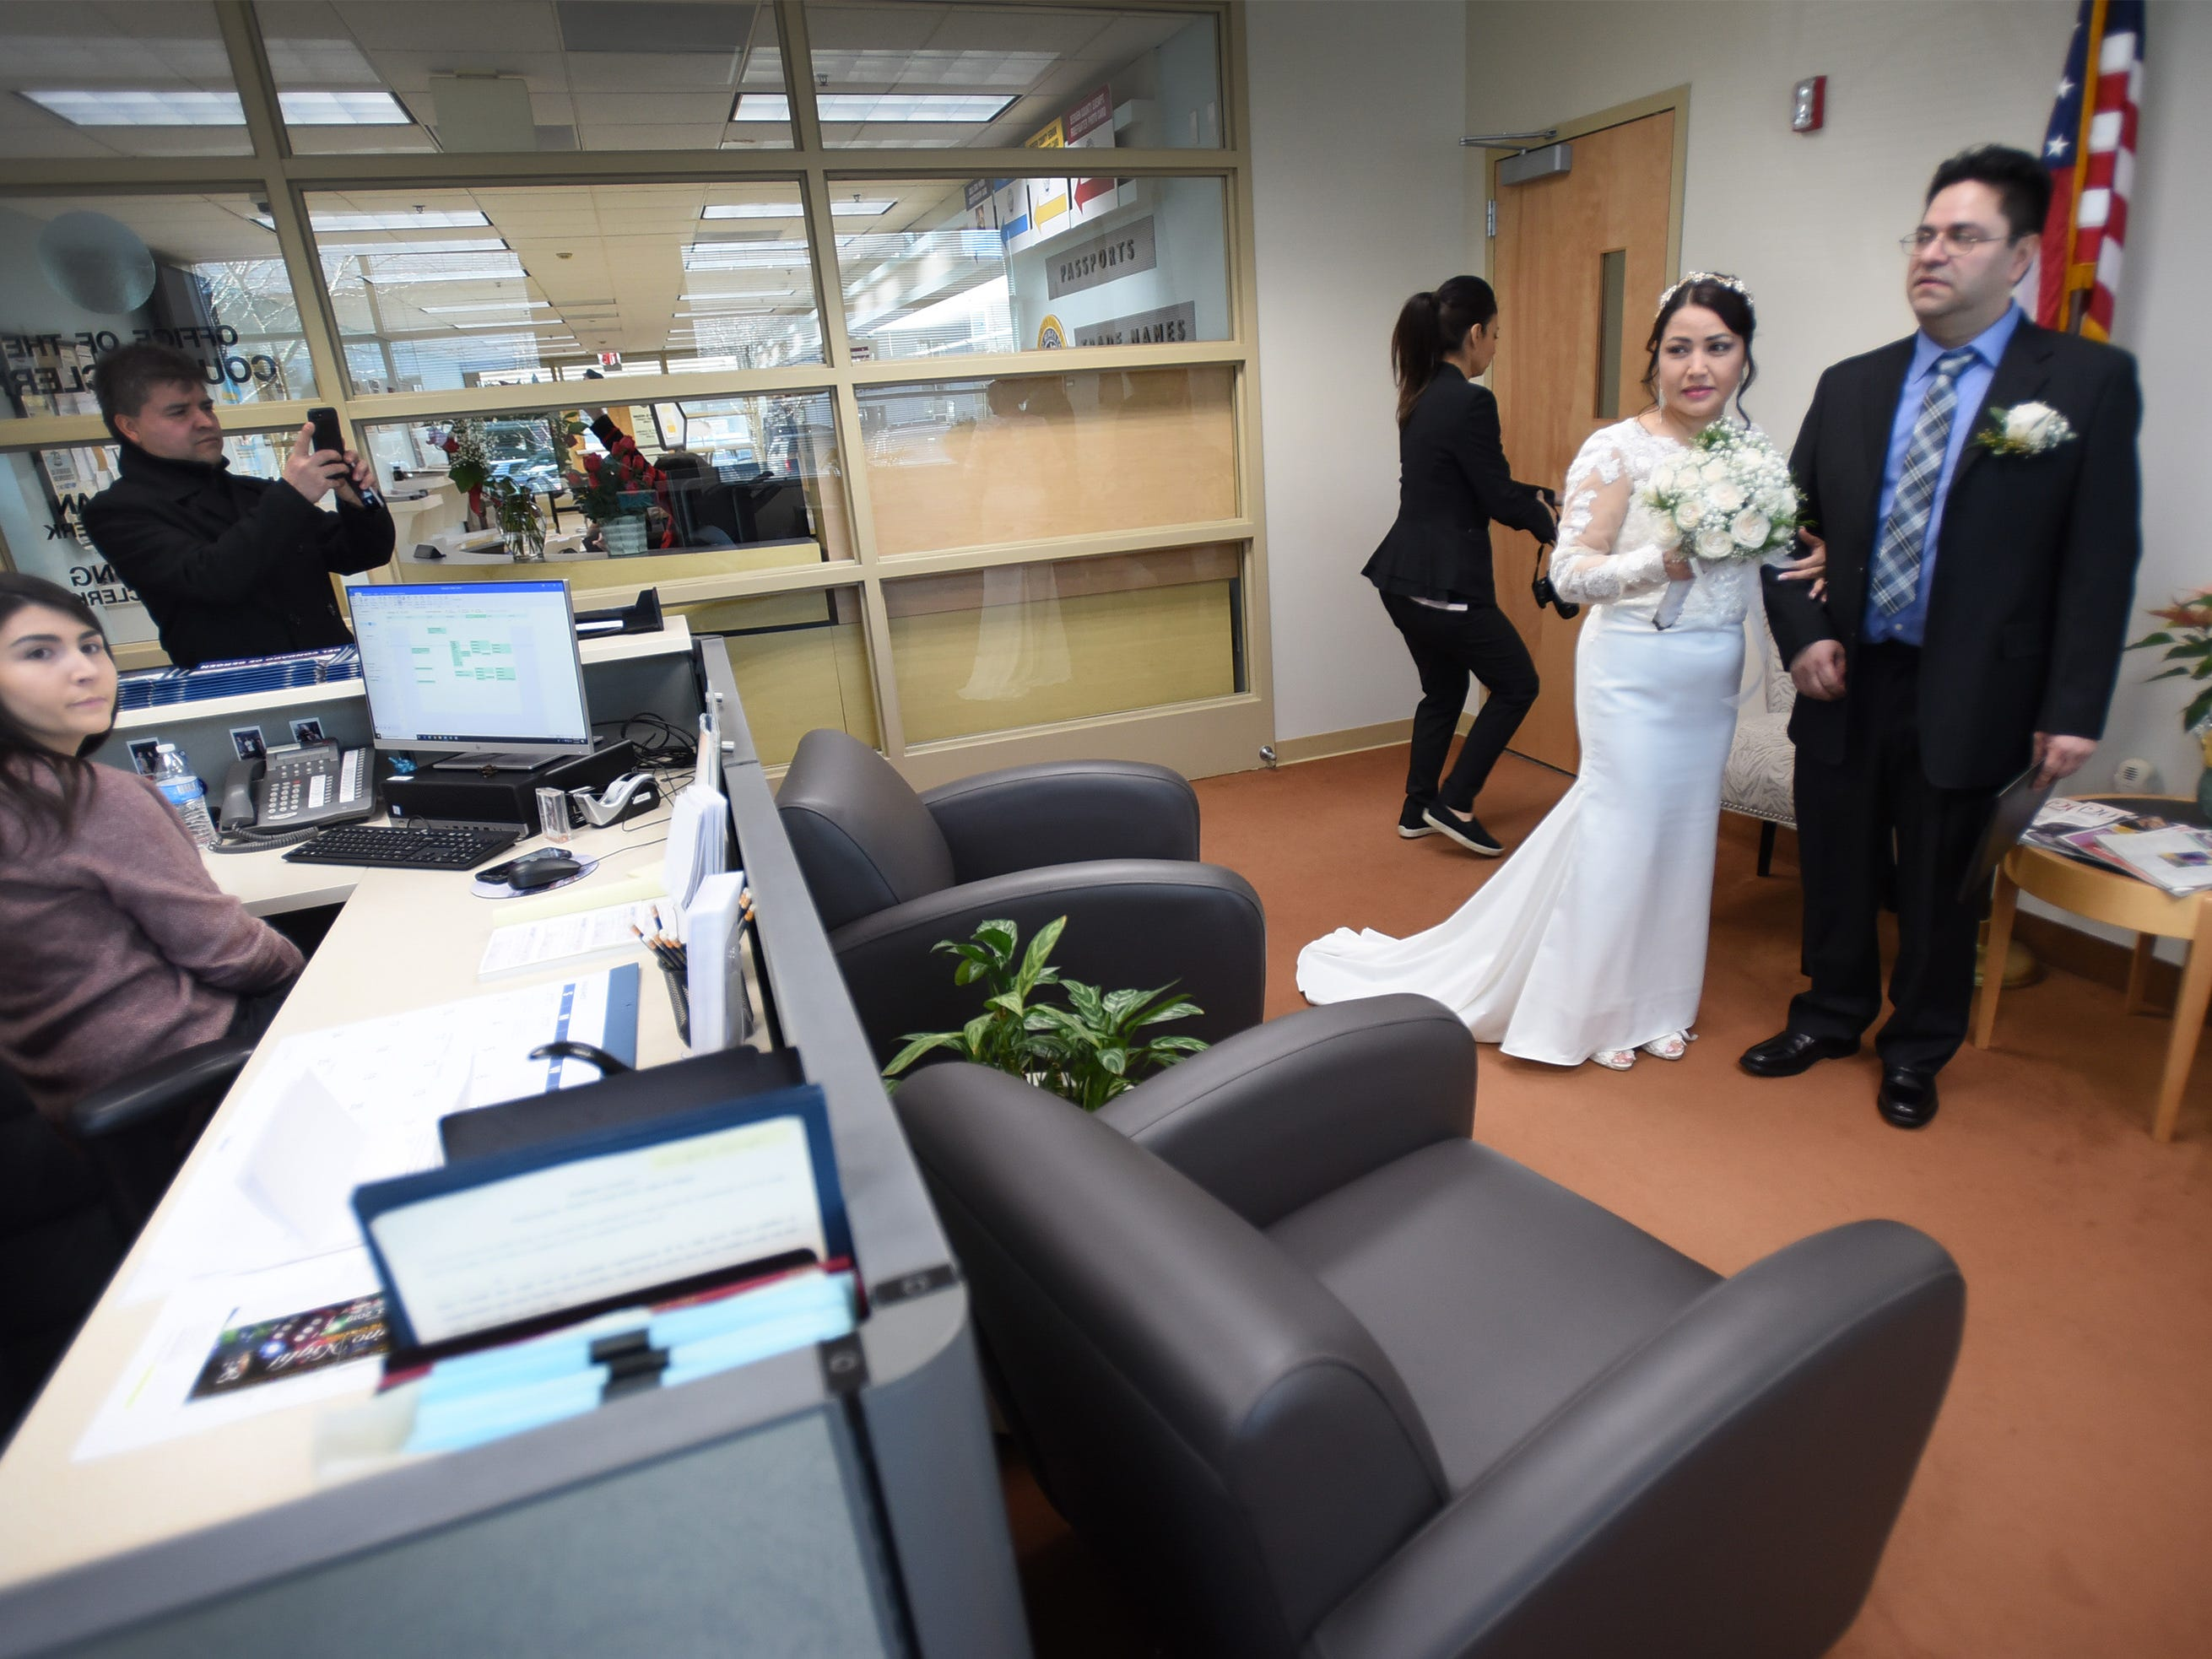 Gloria Gallego and Alexander Gutierrez of Englewood, arrive at Bergen County Clerk's Office for their wedding ceremony, located at Bergen County Plaza in Hackensack on 02/14/19.